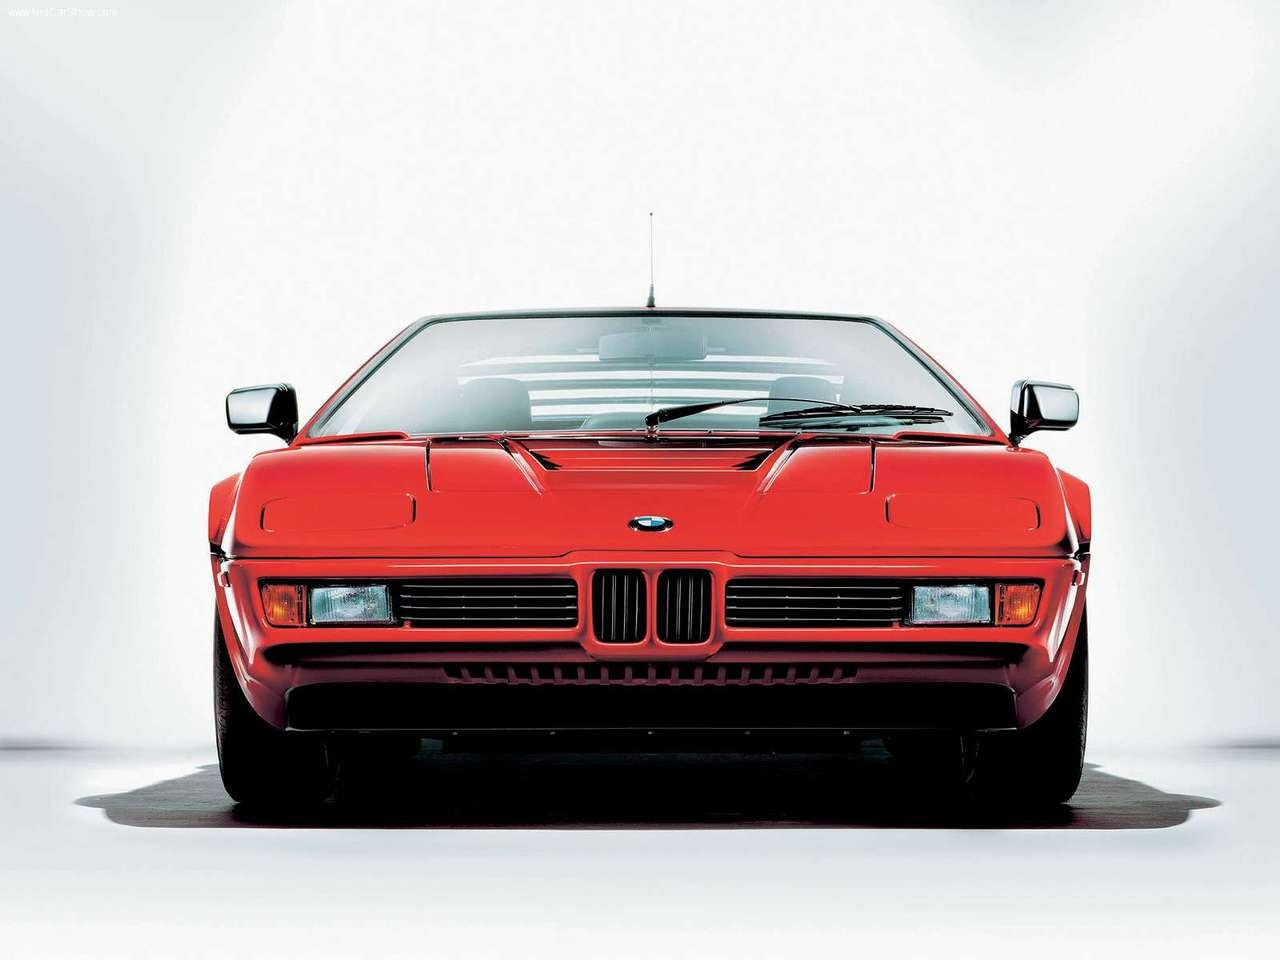 1979 BMW M1 - Overview - CarGurus